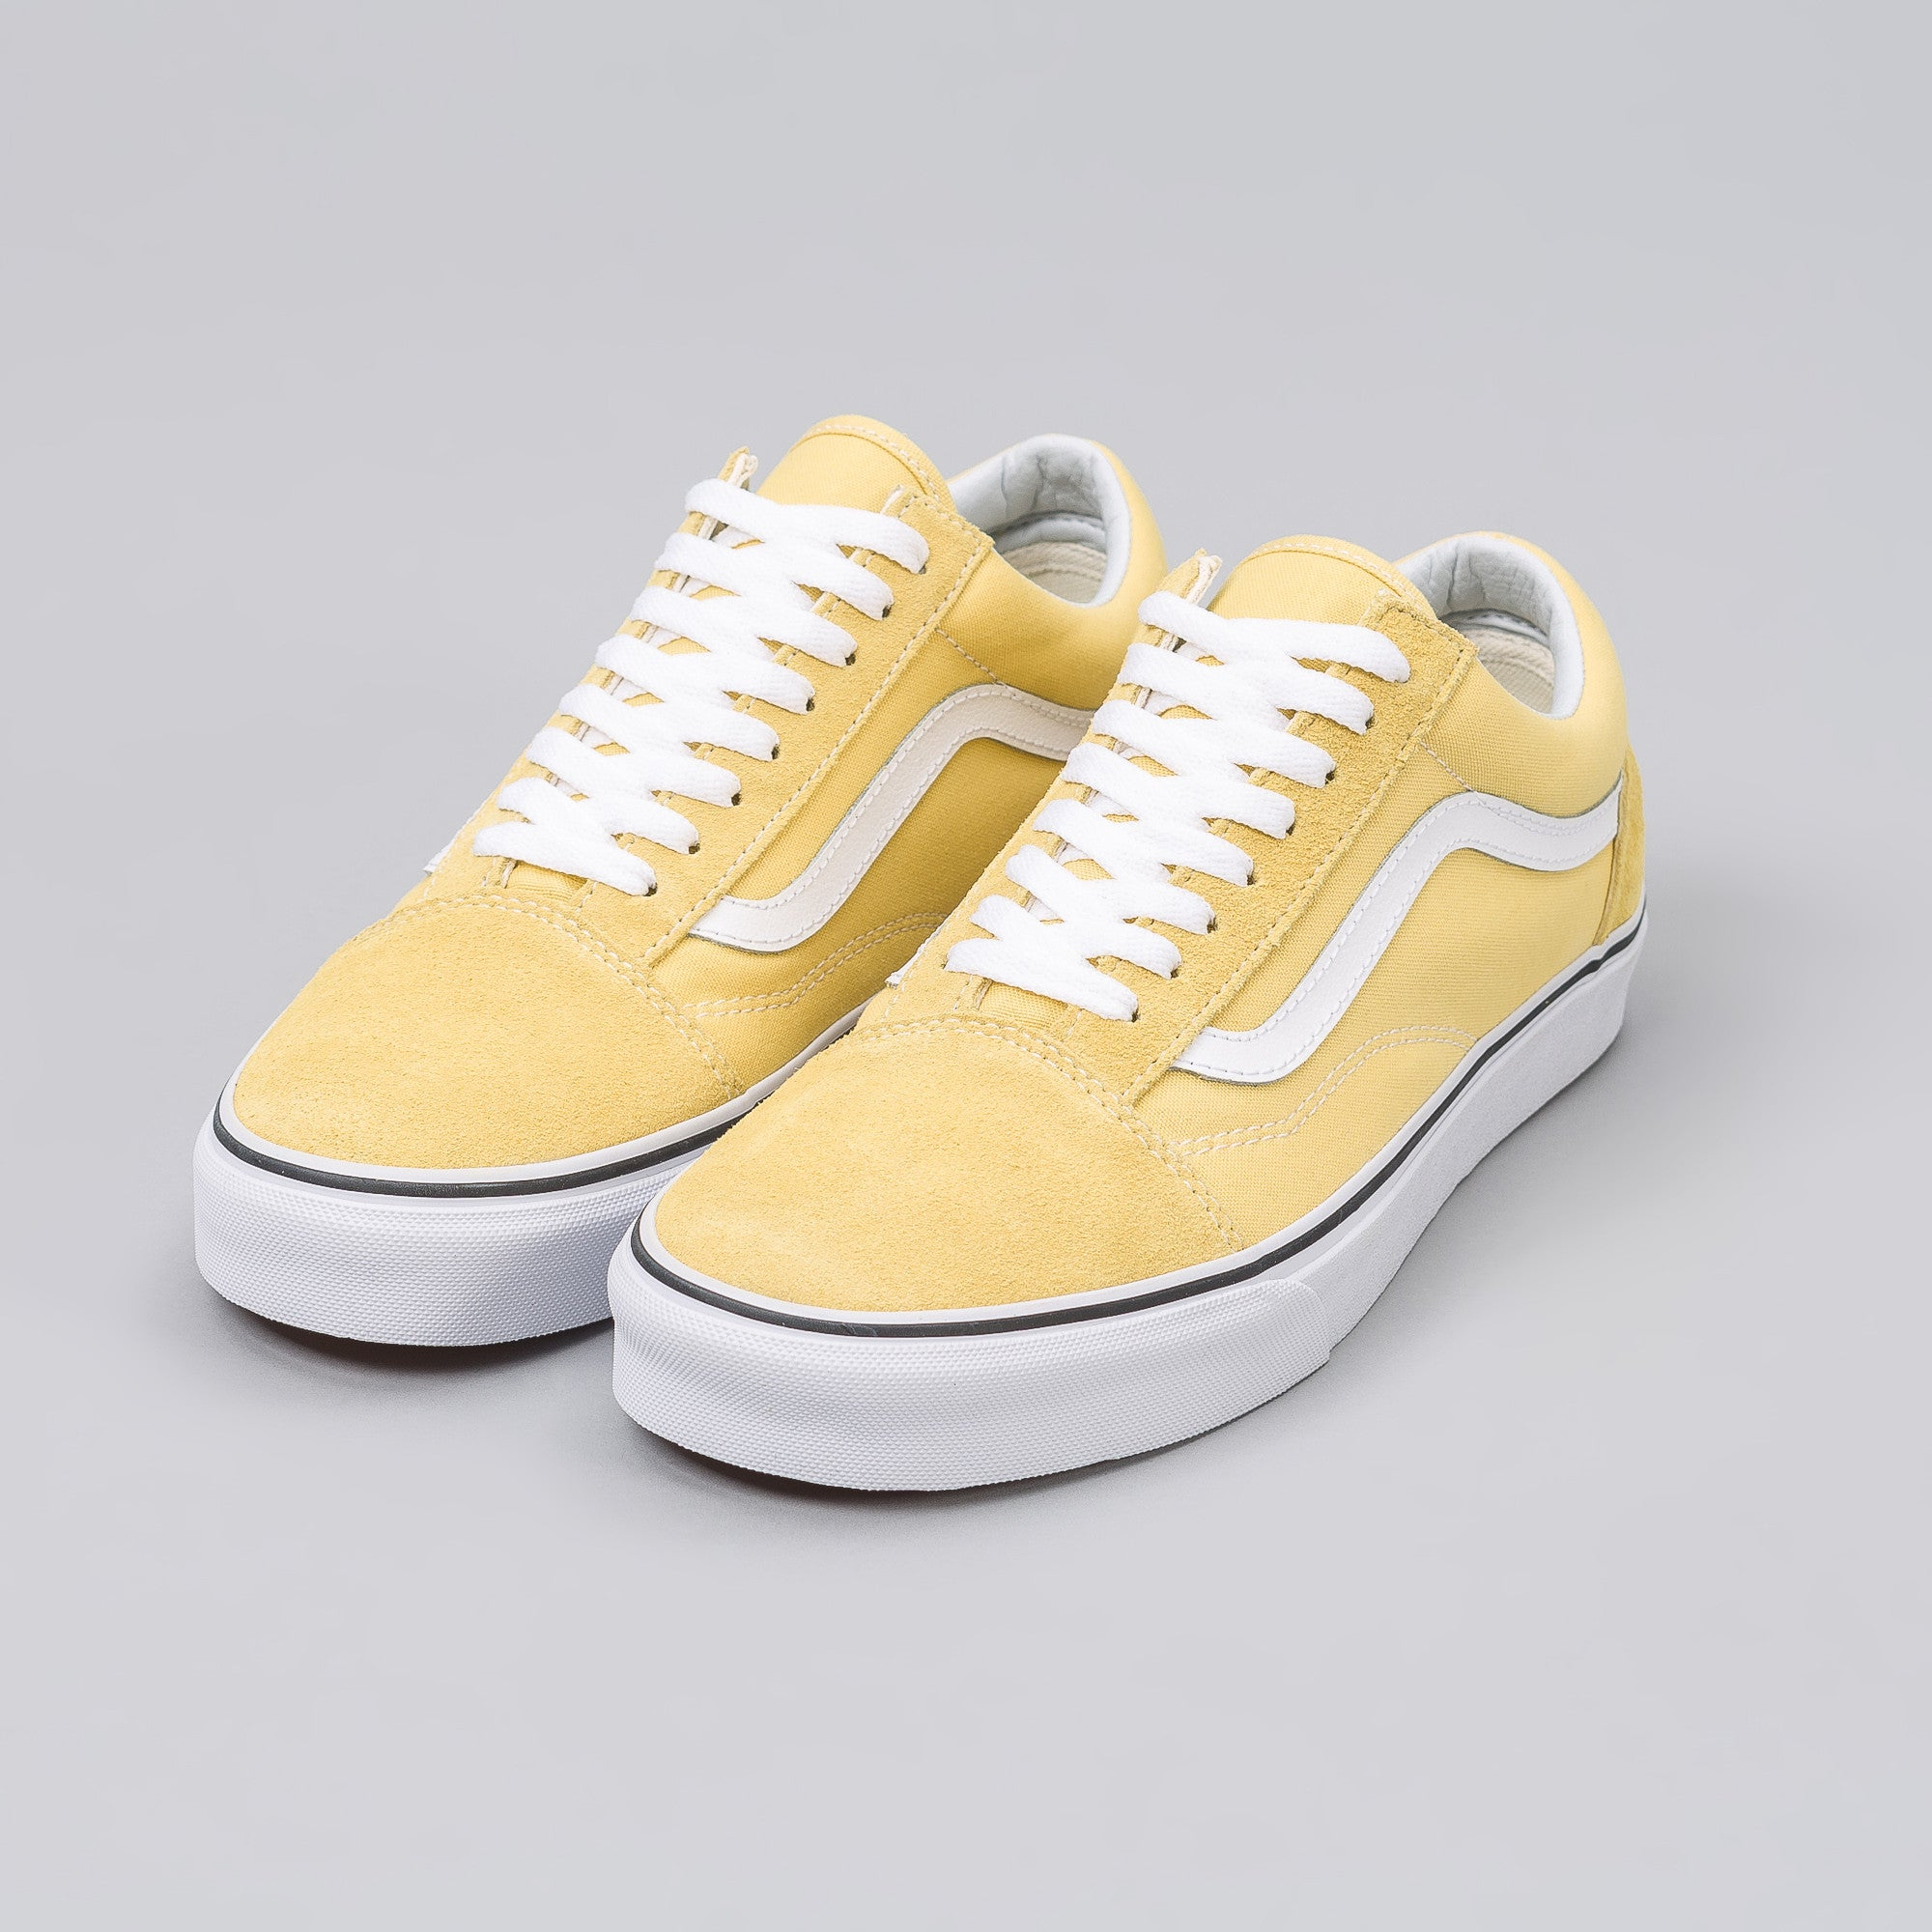 UA Old Skool in Dusky Citron